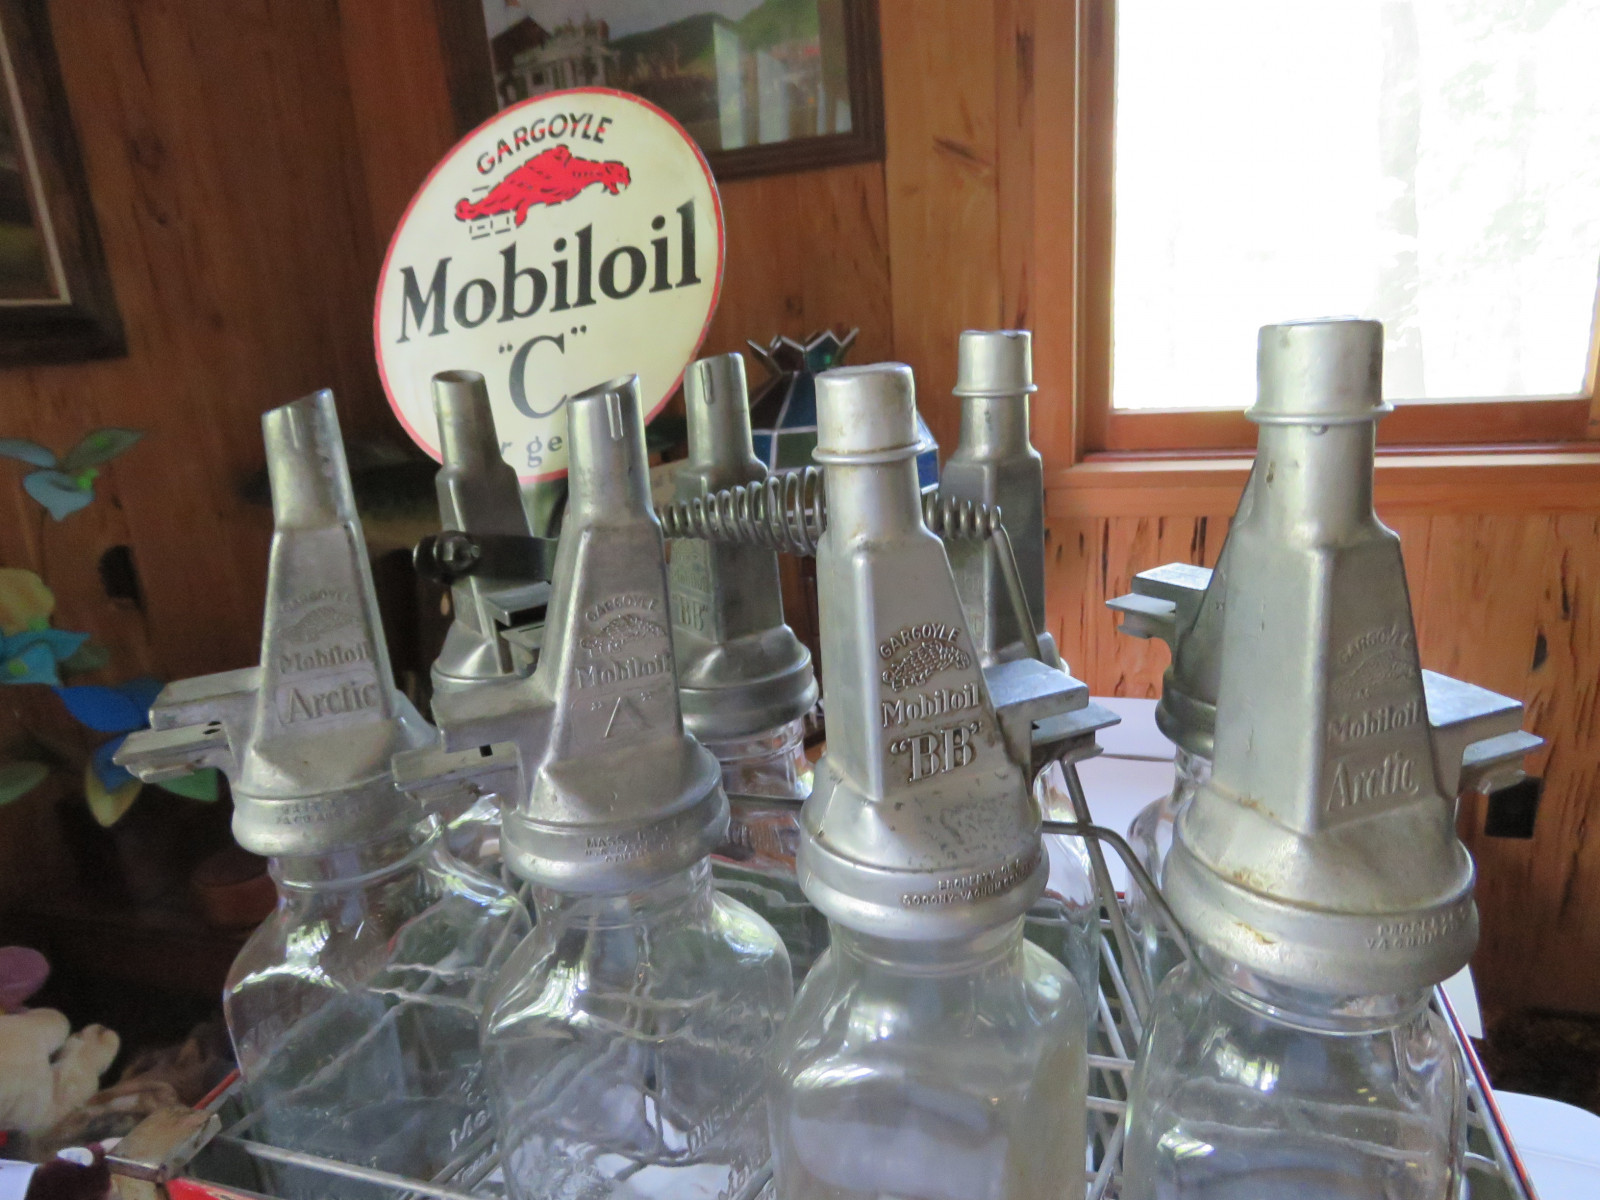 Rare Glass Mobil Oil Bottles in Rack with MobilOil Advertising - Image 2